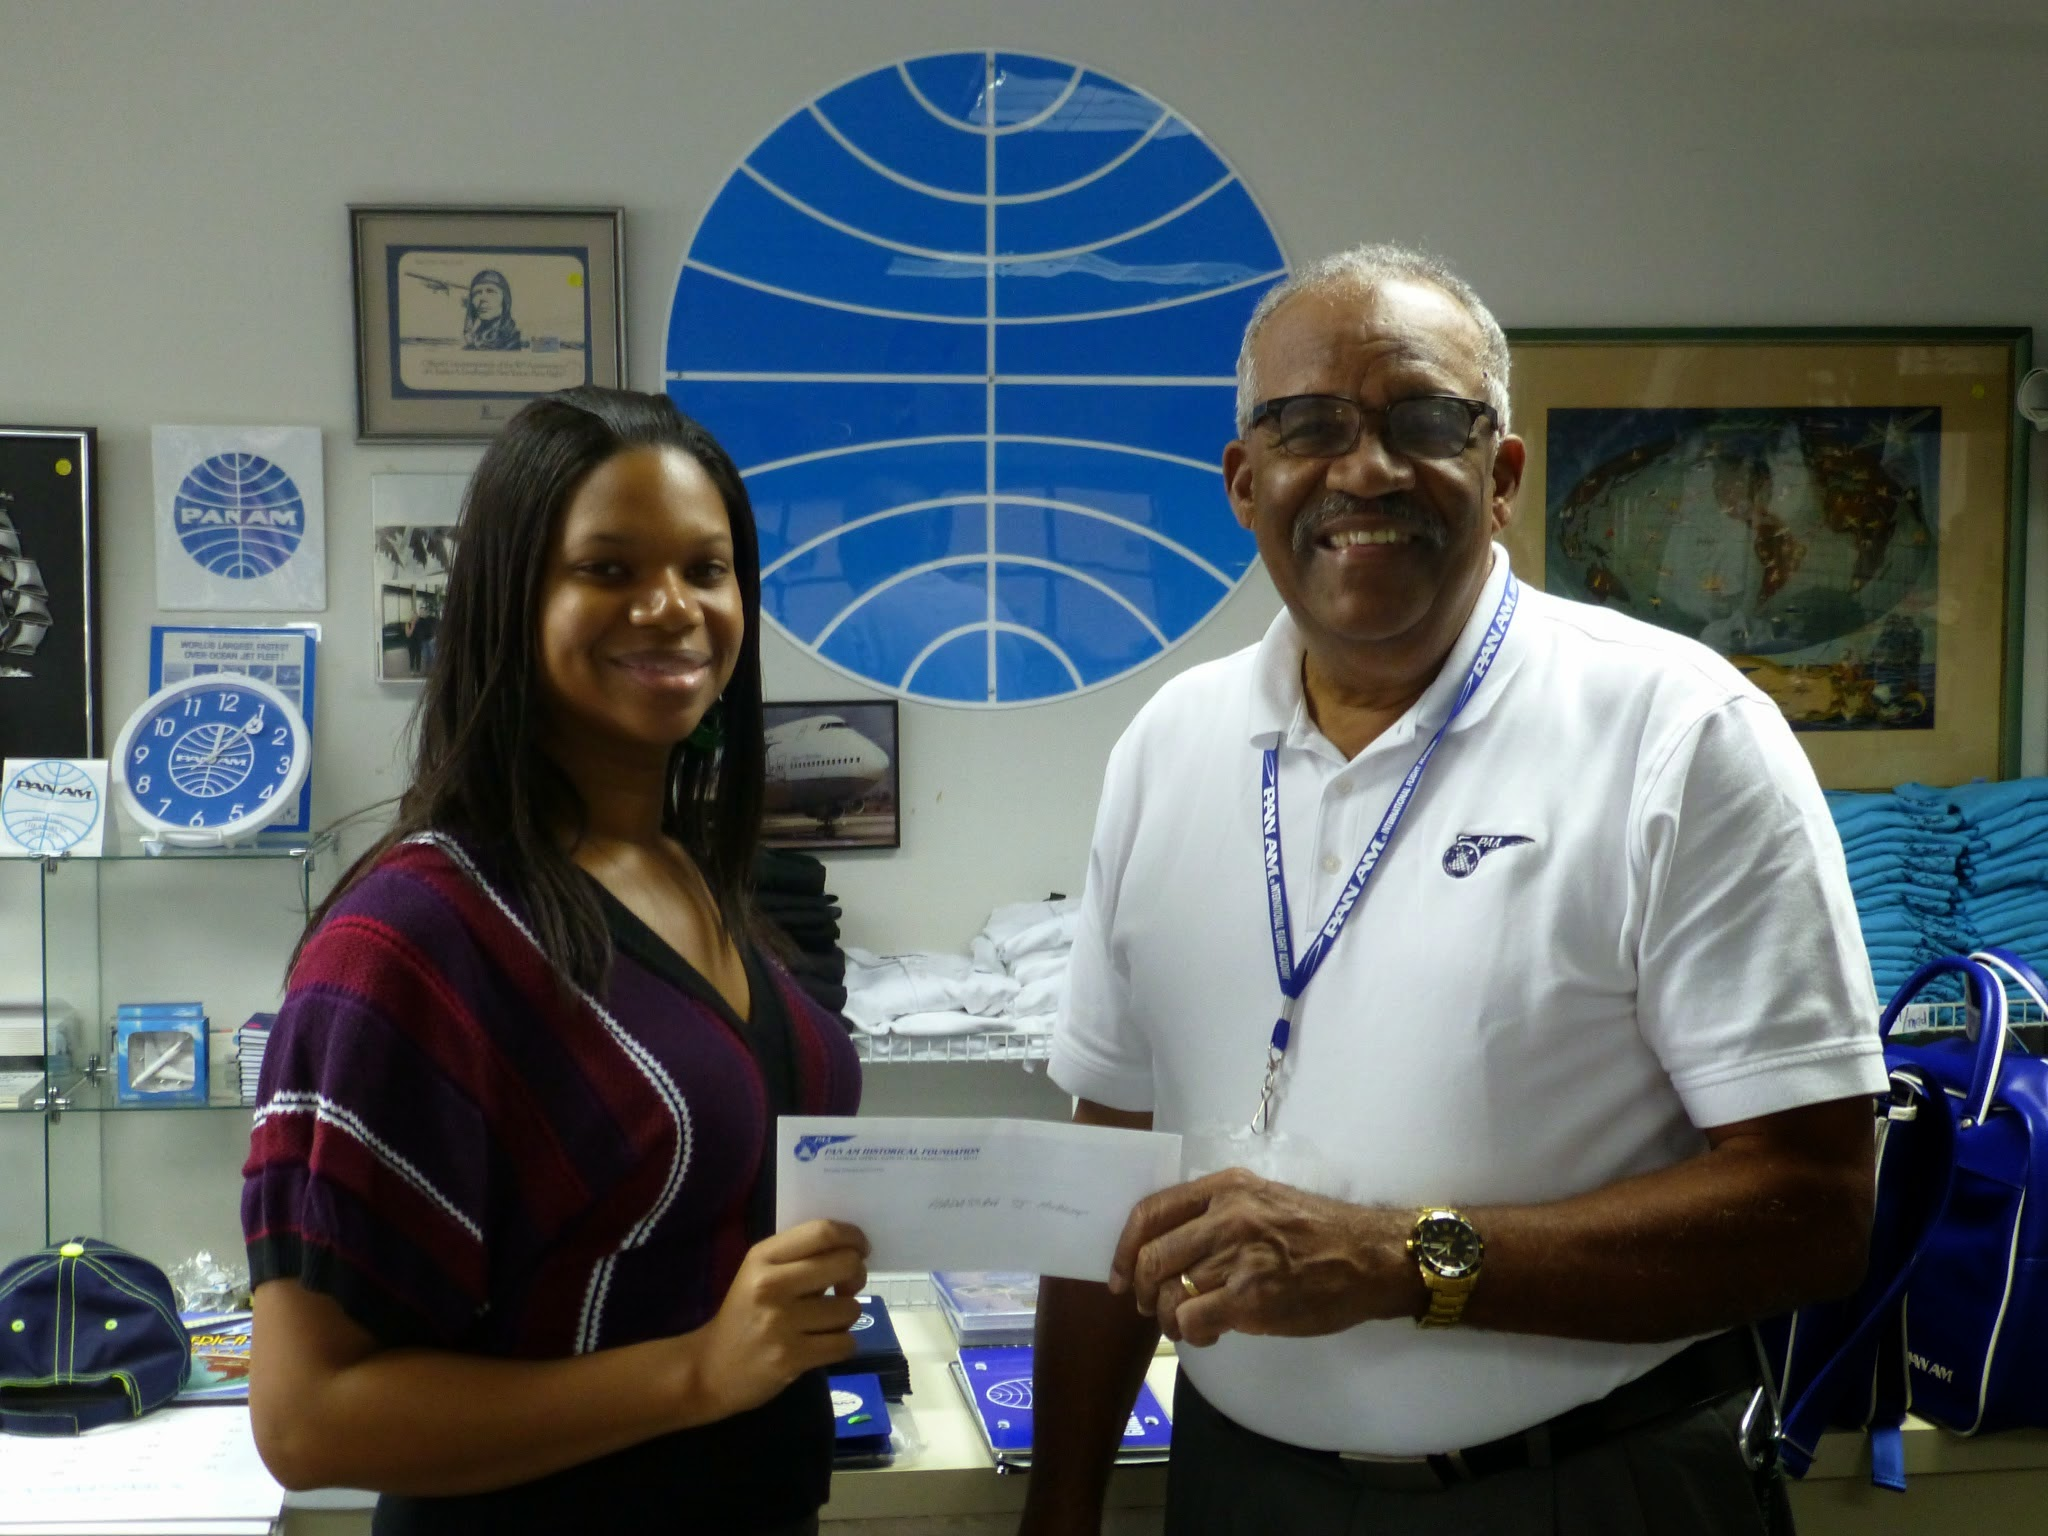 Grant winner Hadassah St. Hubert receives her award from former Pan Am pilot Al Topping